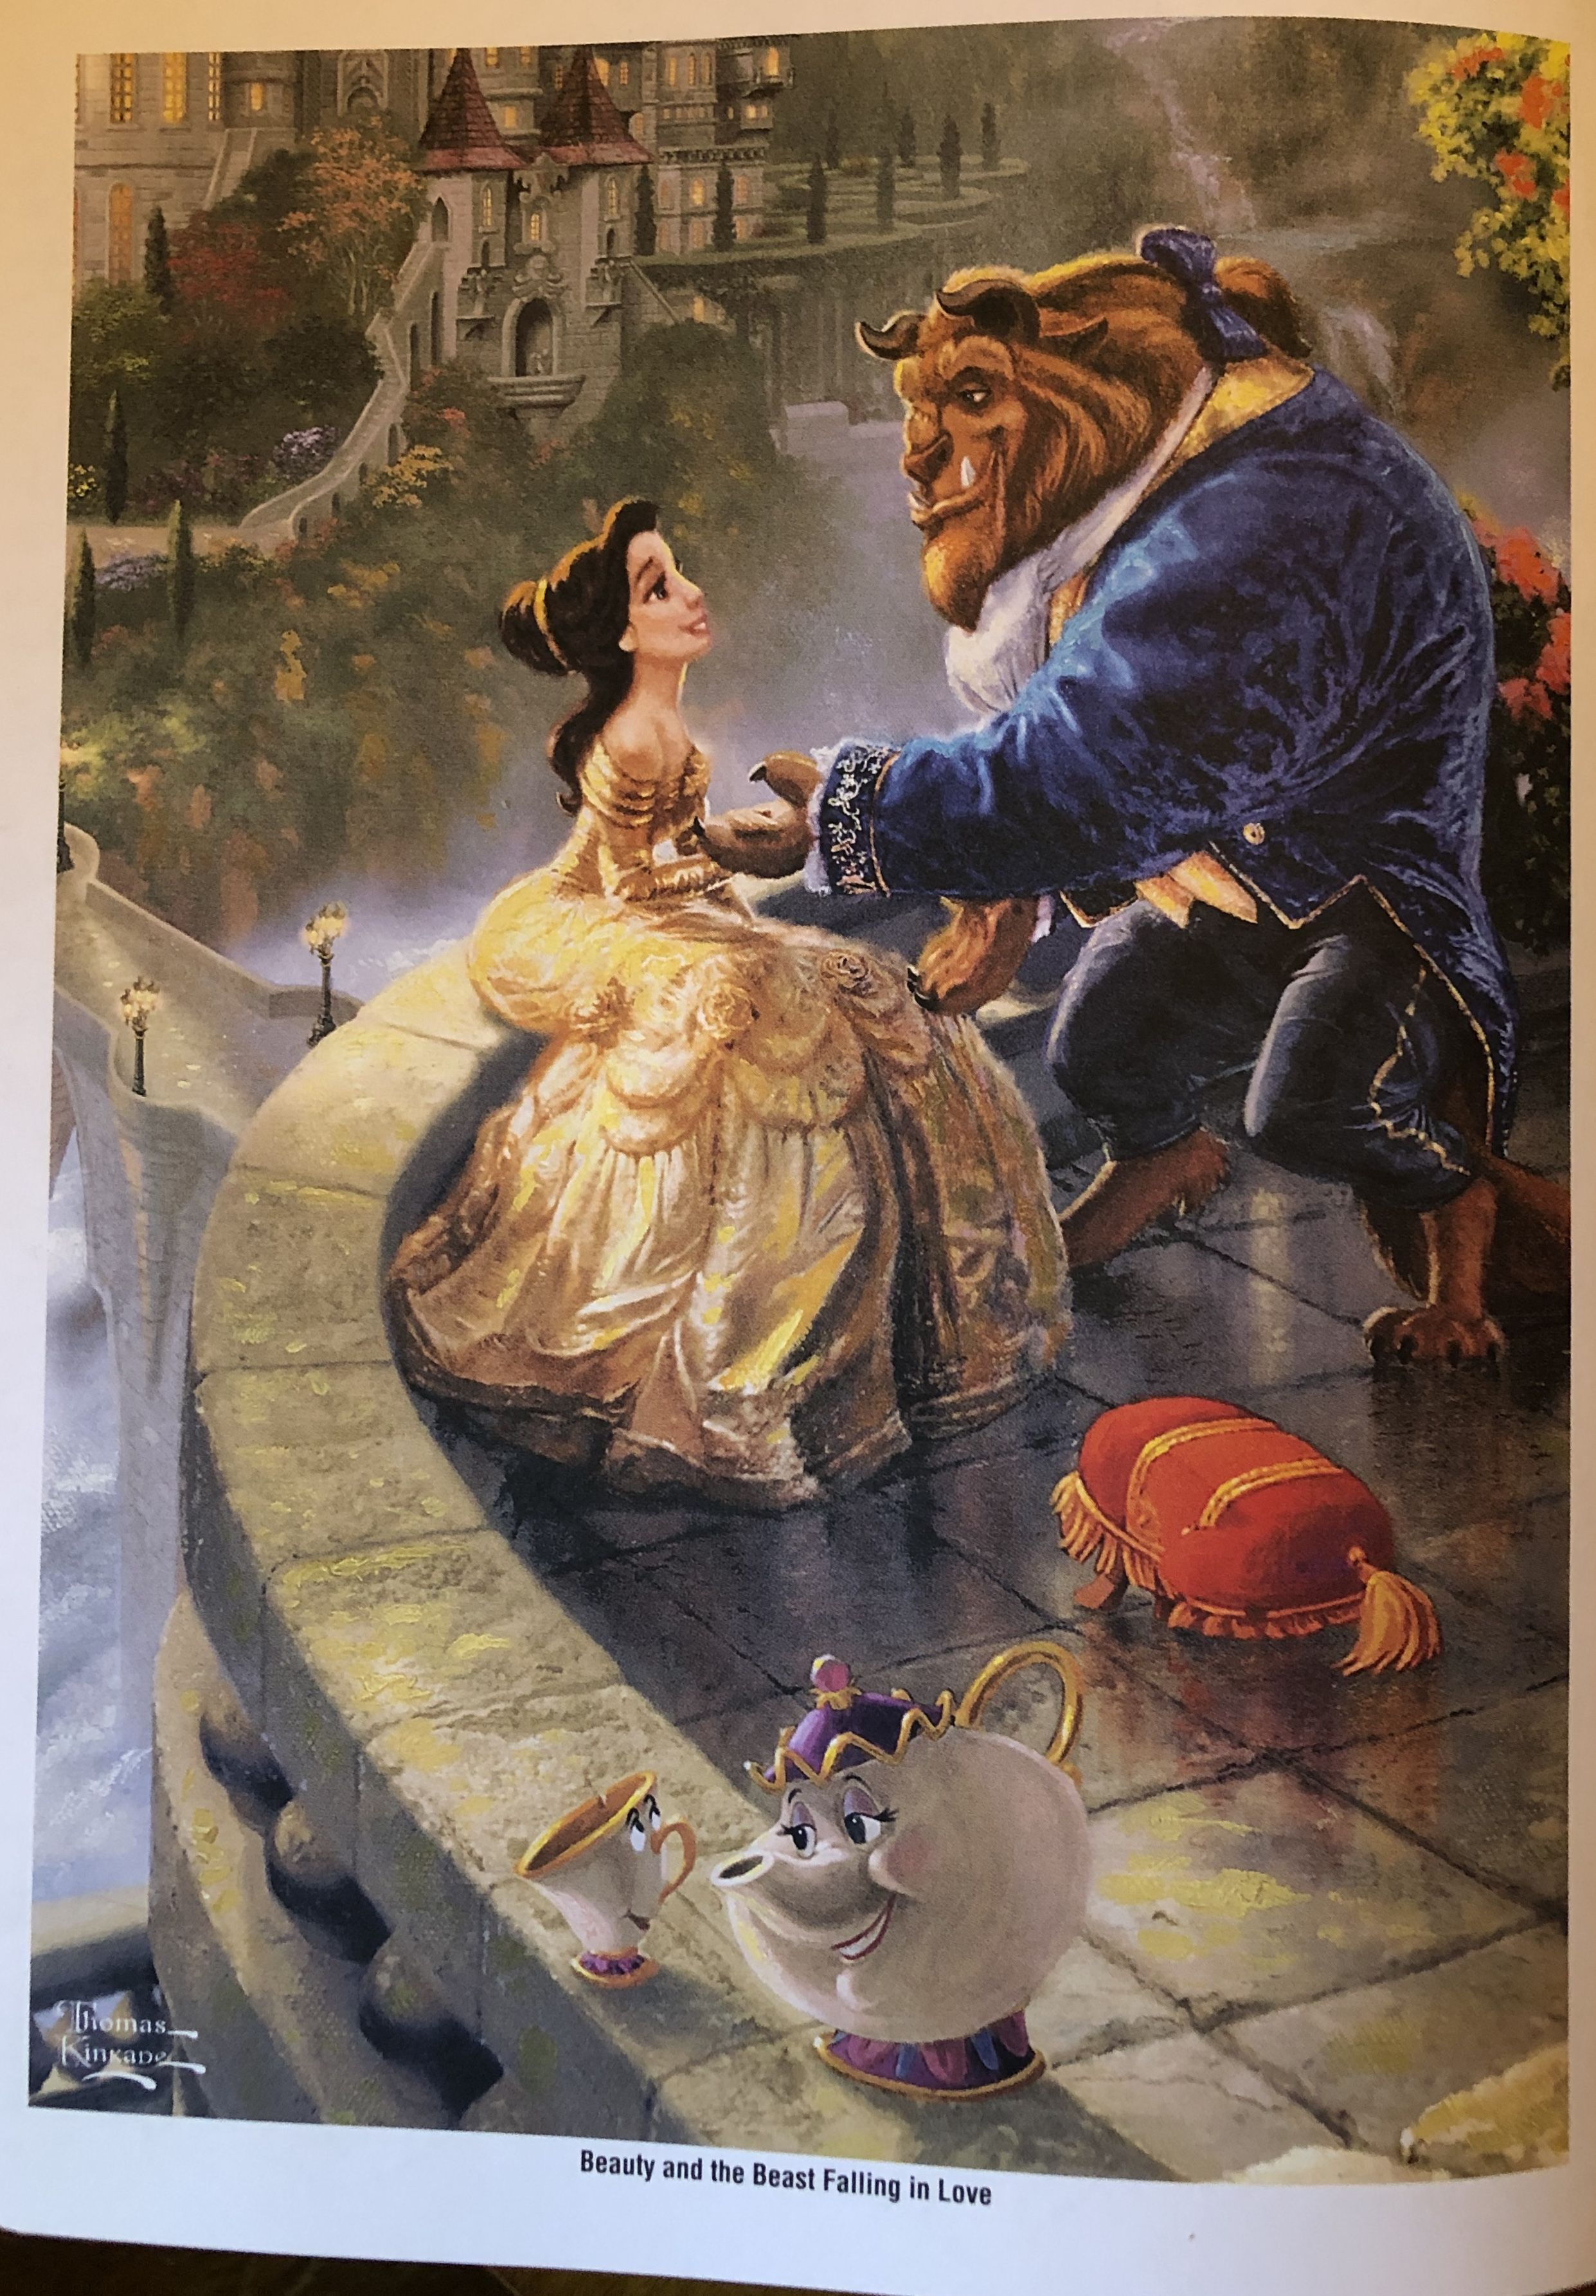 Beauty And The Beast Falling In Love Thomas Kinkade Disney Paintings Thomas Kinkade Disney Kinkade Disney